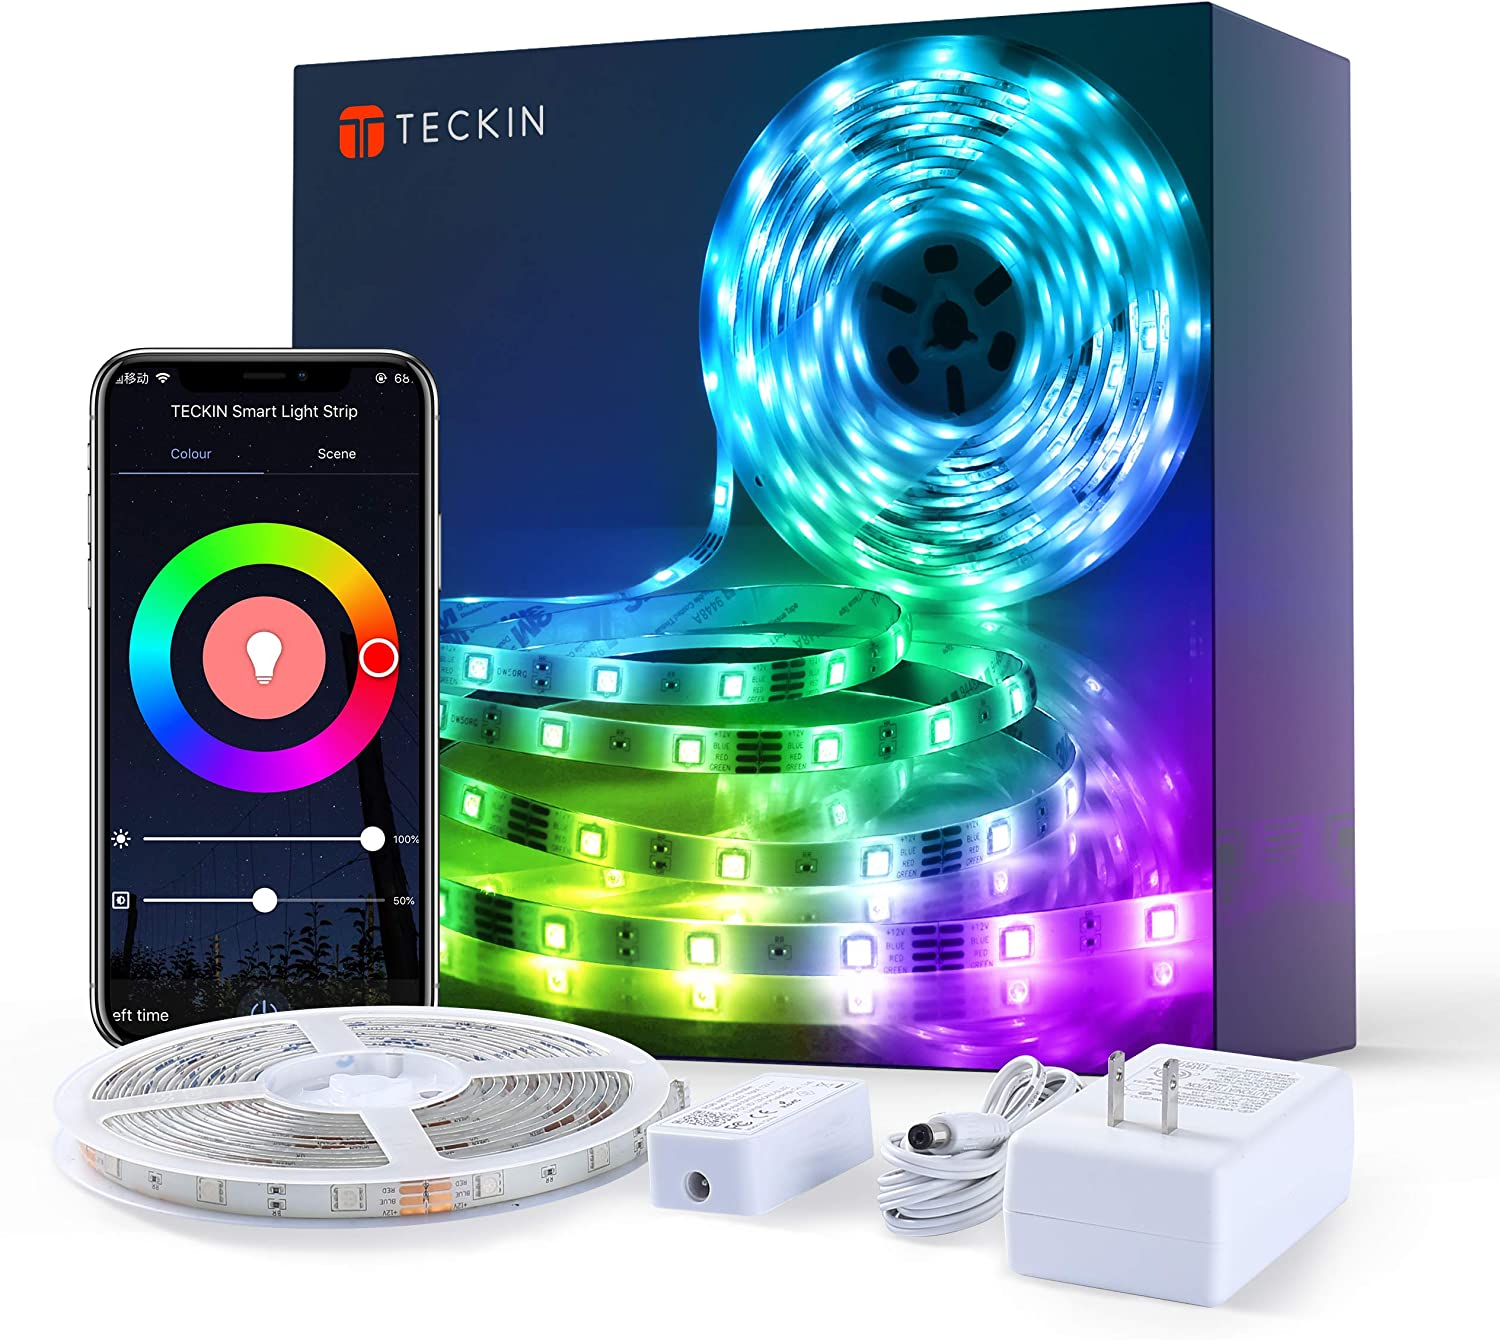 TECKIN Smart WiFi LED Strip Lights Works with Alexa, Google Home 5050 LED, 16 Million Colors Phone App Controlled Music Light Strip for Home, Kitchen, TV, Party, for iOS and Android, 16.4ft